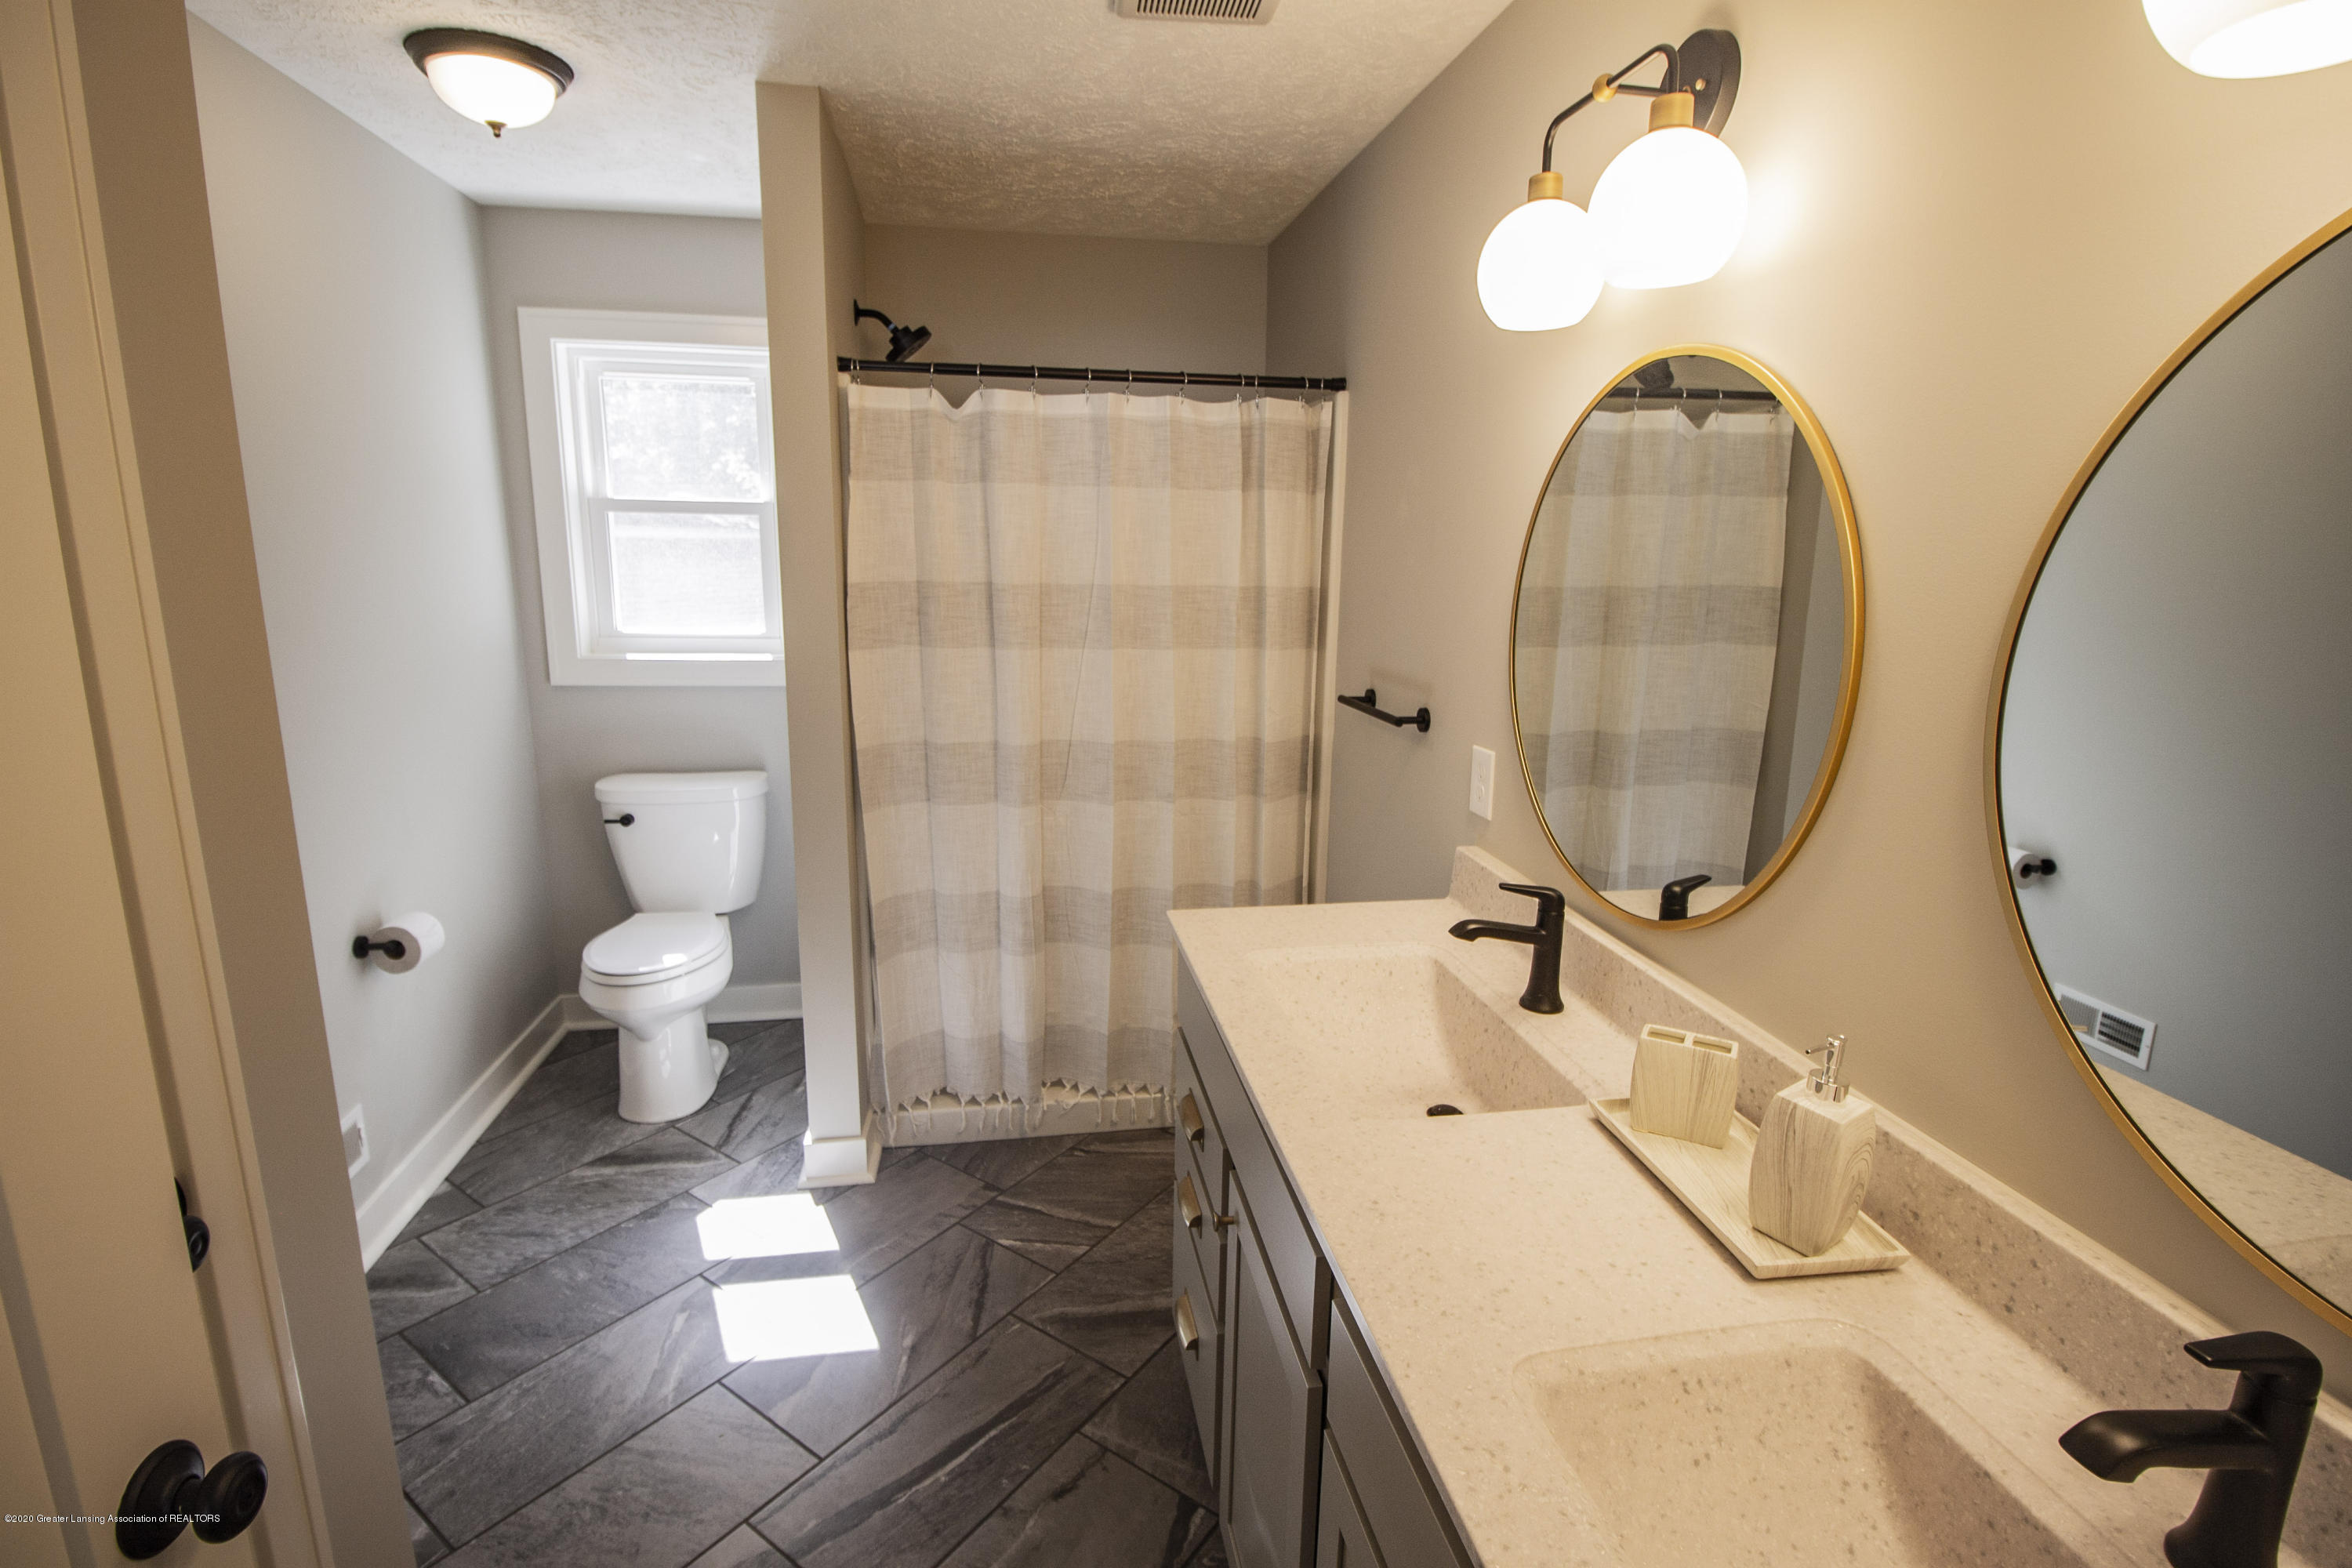 211 Russell St - 20. Russell Master Bath - 20